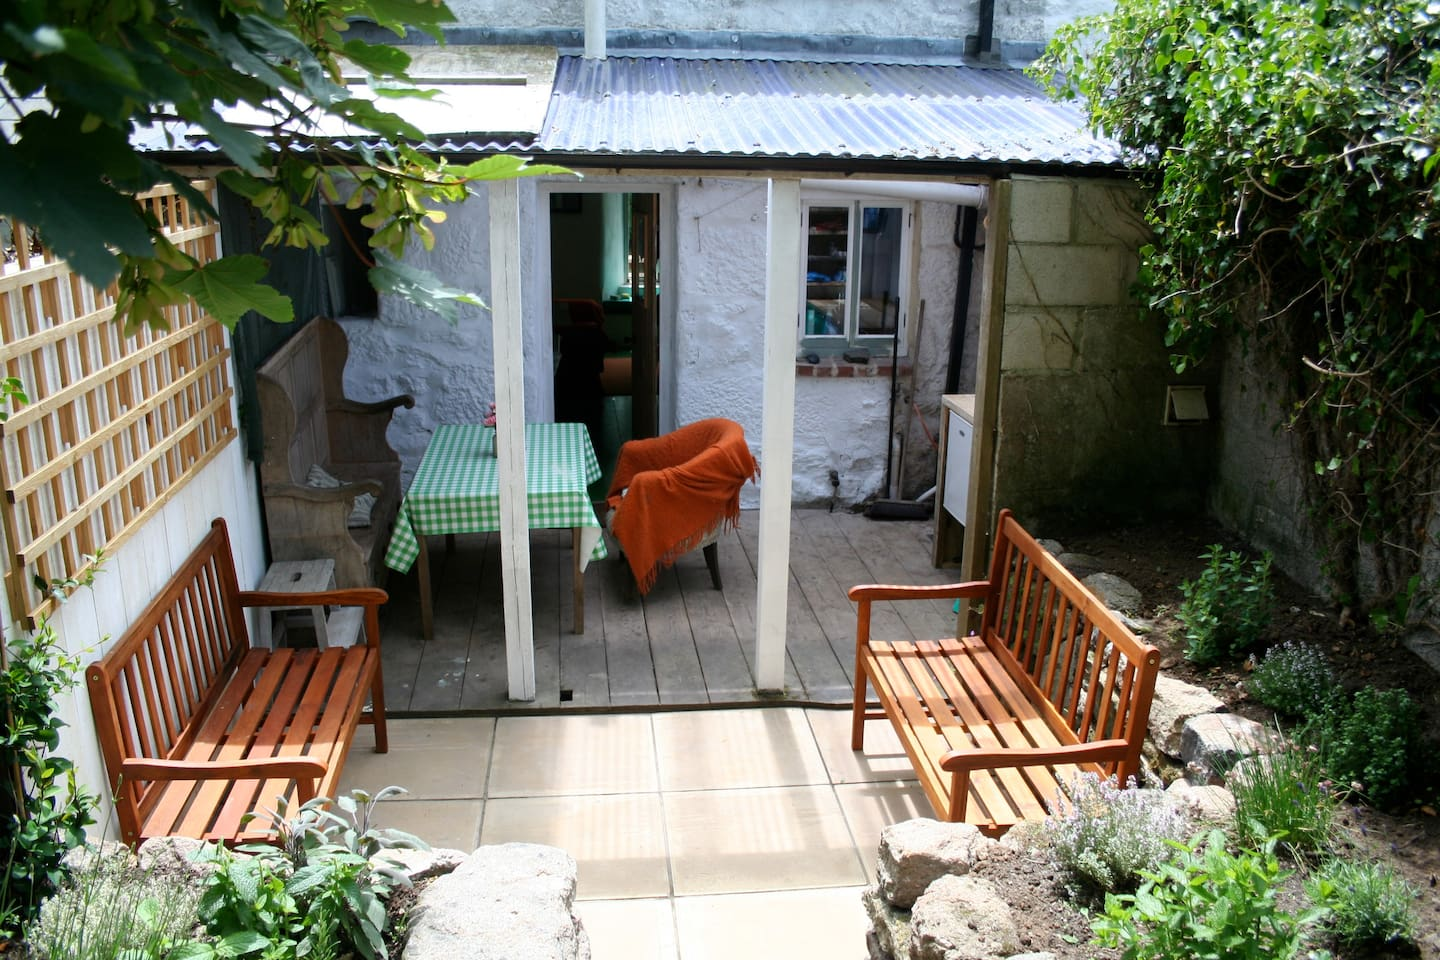 8205 cornwall - Miners Cottage In Sheltered Valley In Saint Just England United Kingdom